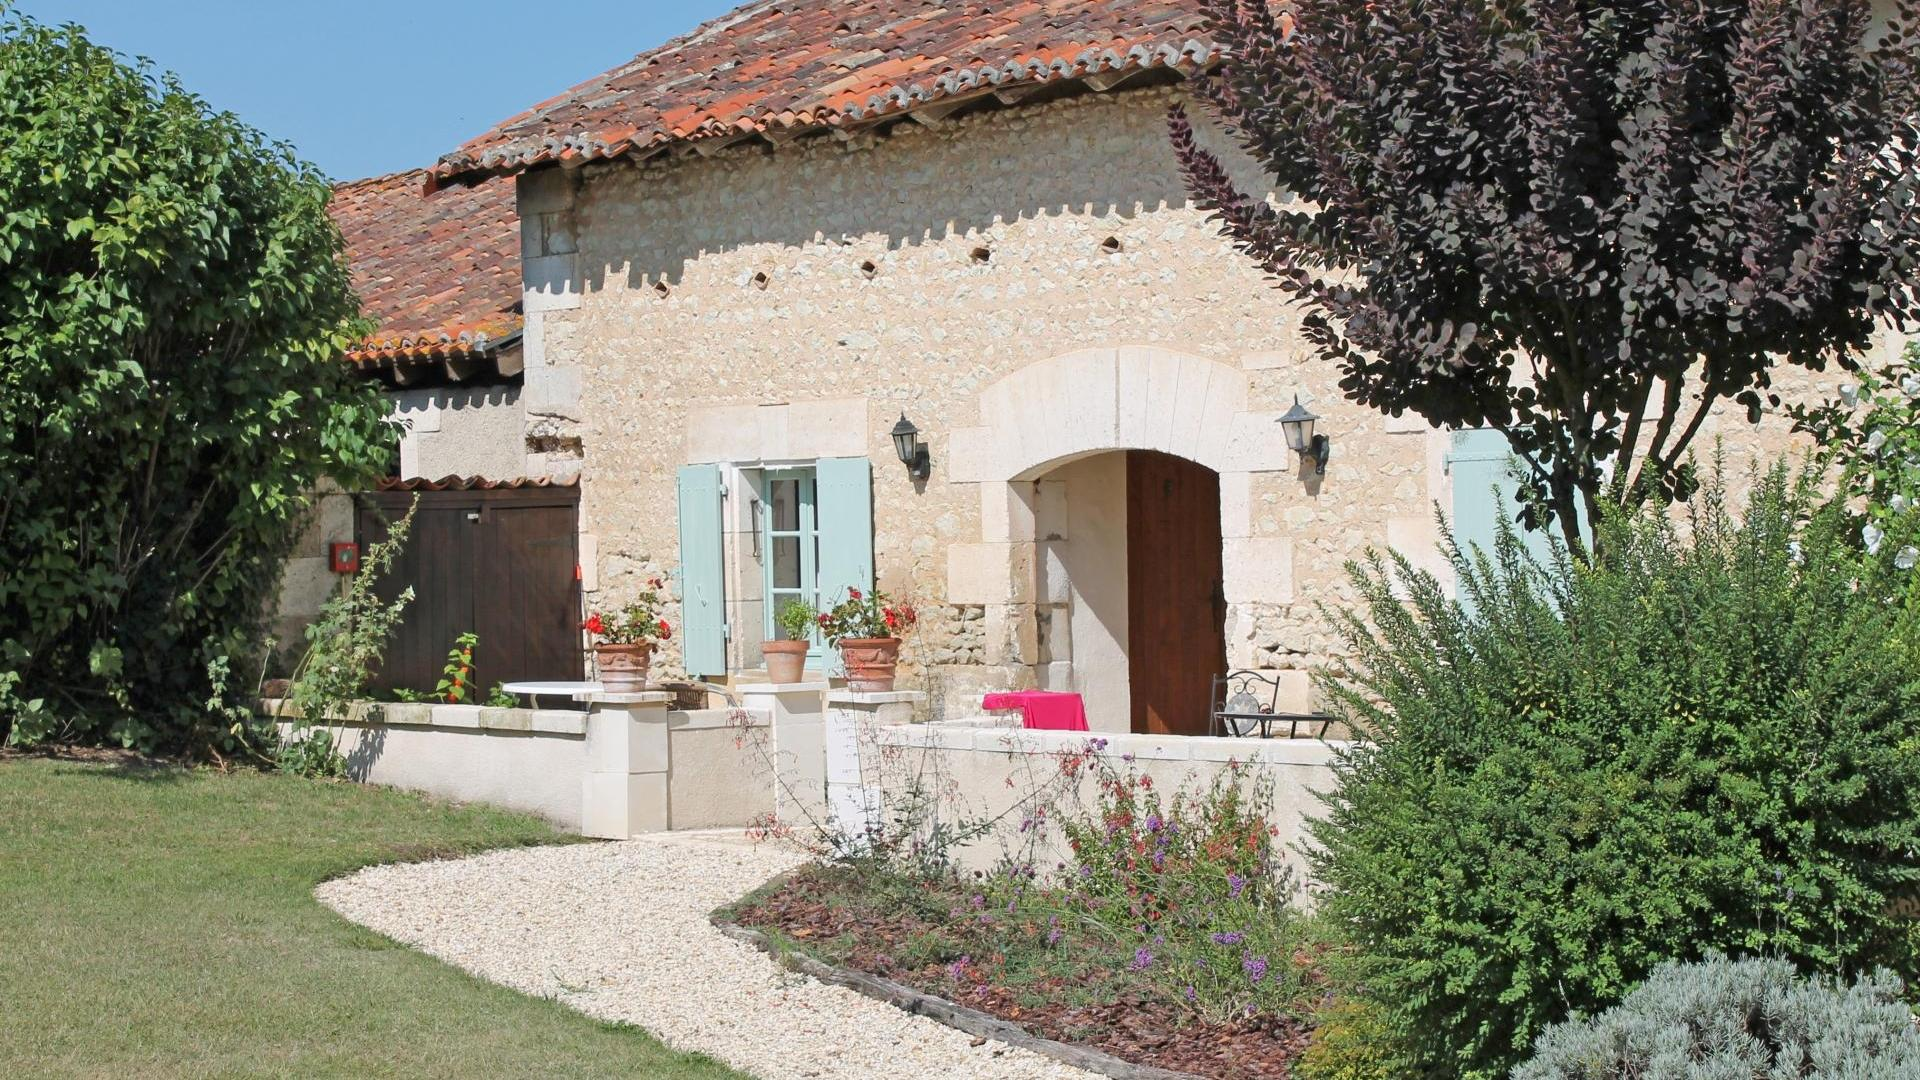 1 Bedroom Private cottage/shared facilities in Poitou-Charentes, France